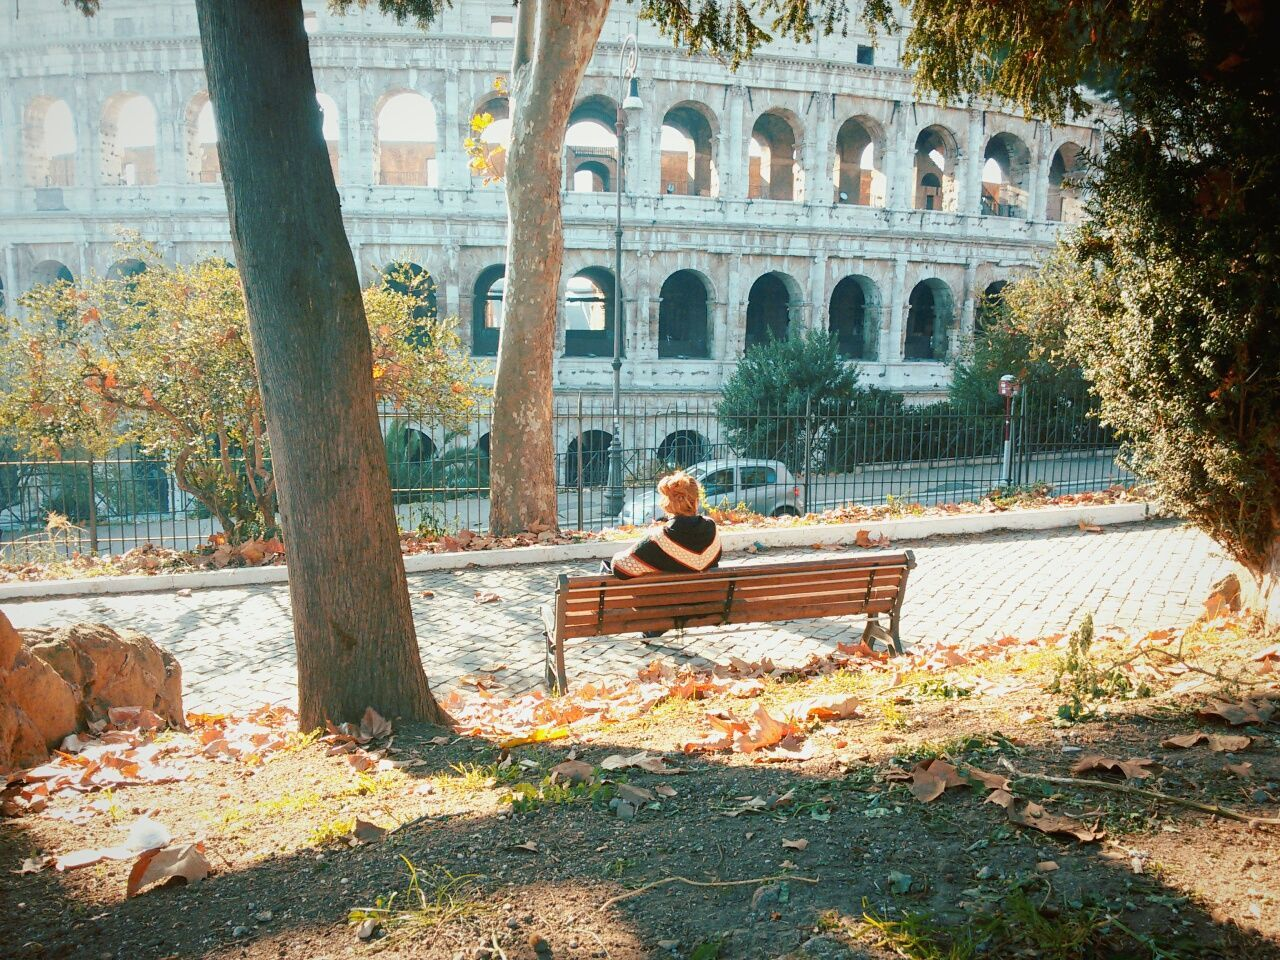 The City Light Spirituality Sitting On A Bench Colors Of Autumn One Person Architecture Tree History Real People Reflections And Shadows Woman Sitting Redhair Streetphotography Bench Under Tree Grassfield Leaves Falling Eyem Best Edits Worship Spirituality Enjoy The New Normal Lights And Shadows Urban Lifestyle Roma, Italy Eyem Best Shot - Architecture Eyeem Market Women Around The World EyeEmNewHere Art Is Everywhere The Street Photographer - 2017 EyeEm Awards BYOPaper! Live For The Story Market Place Of Heart